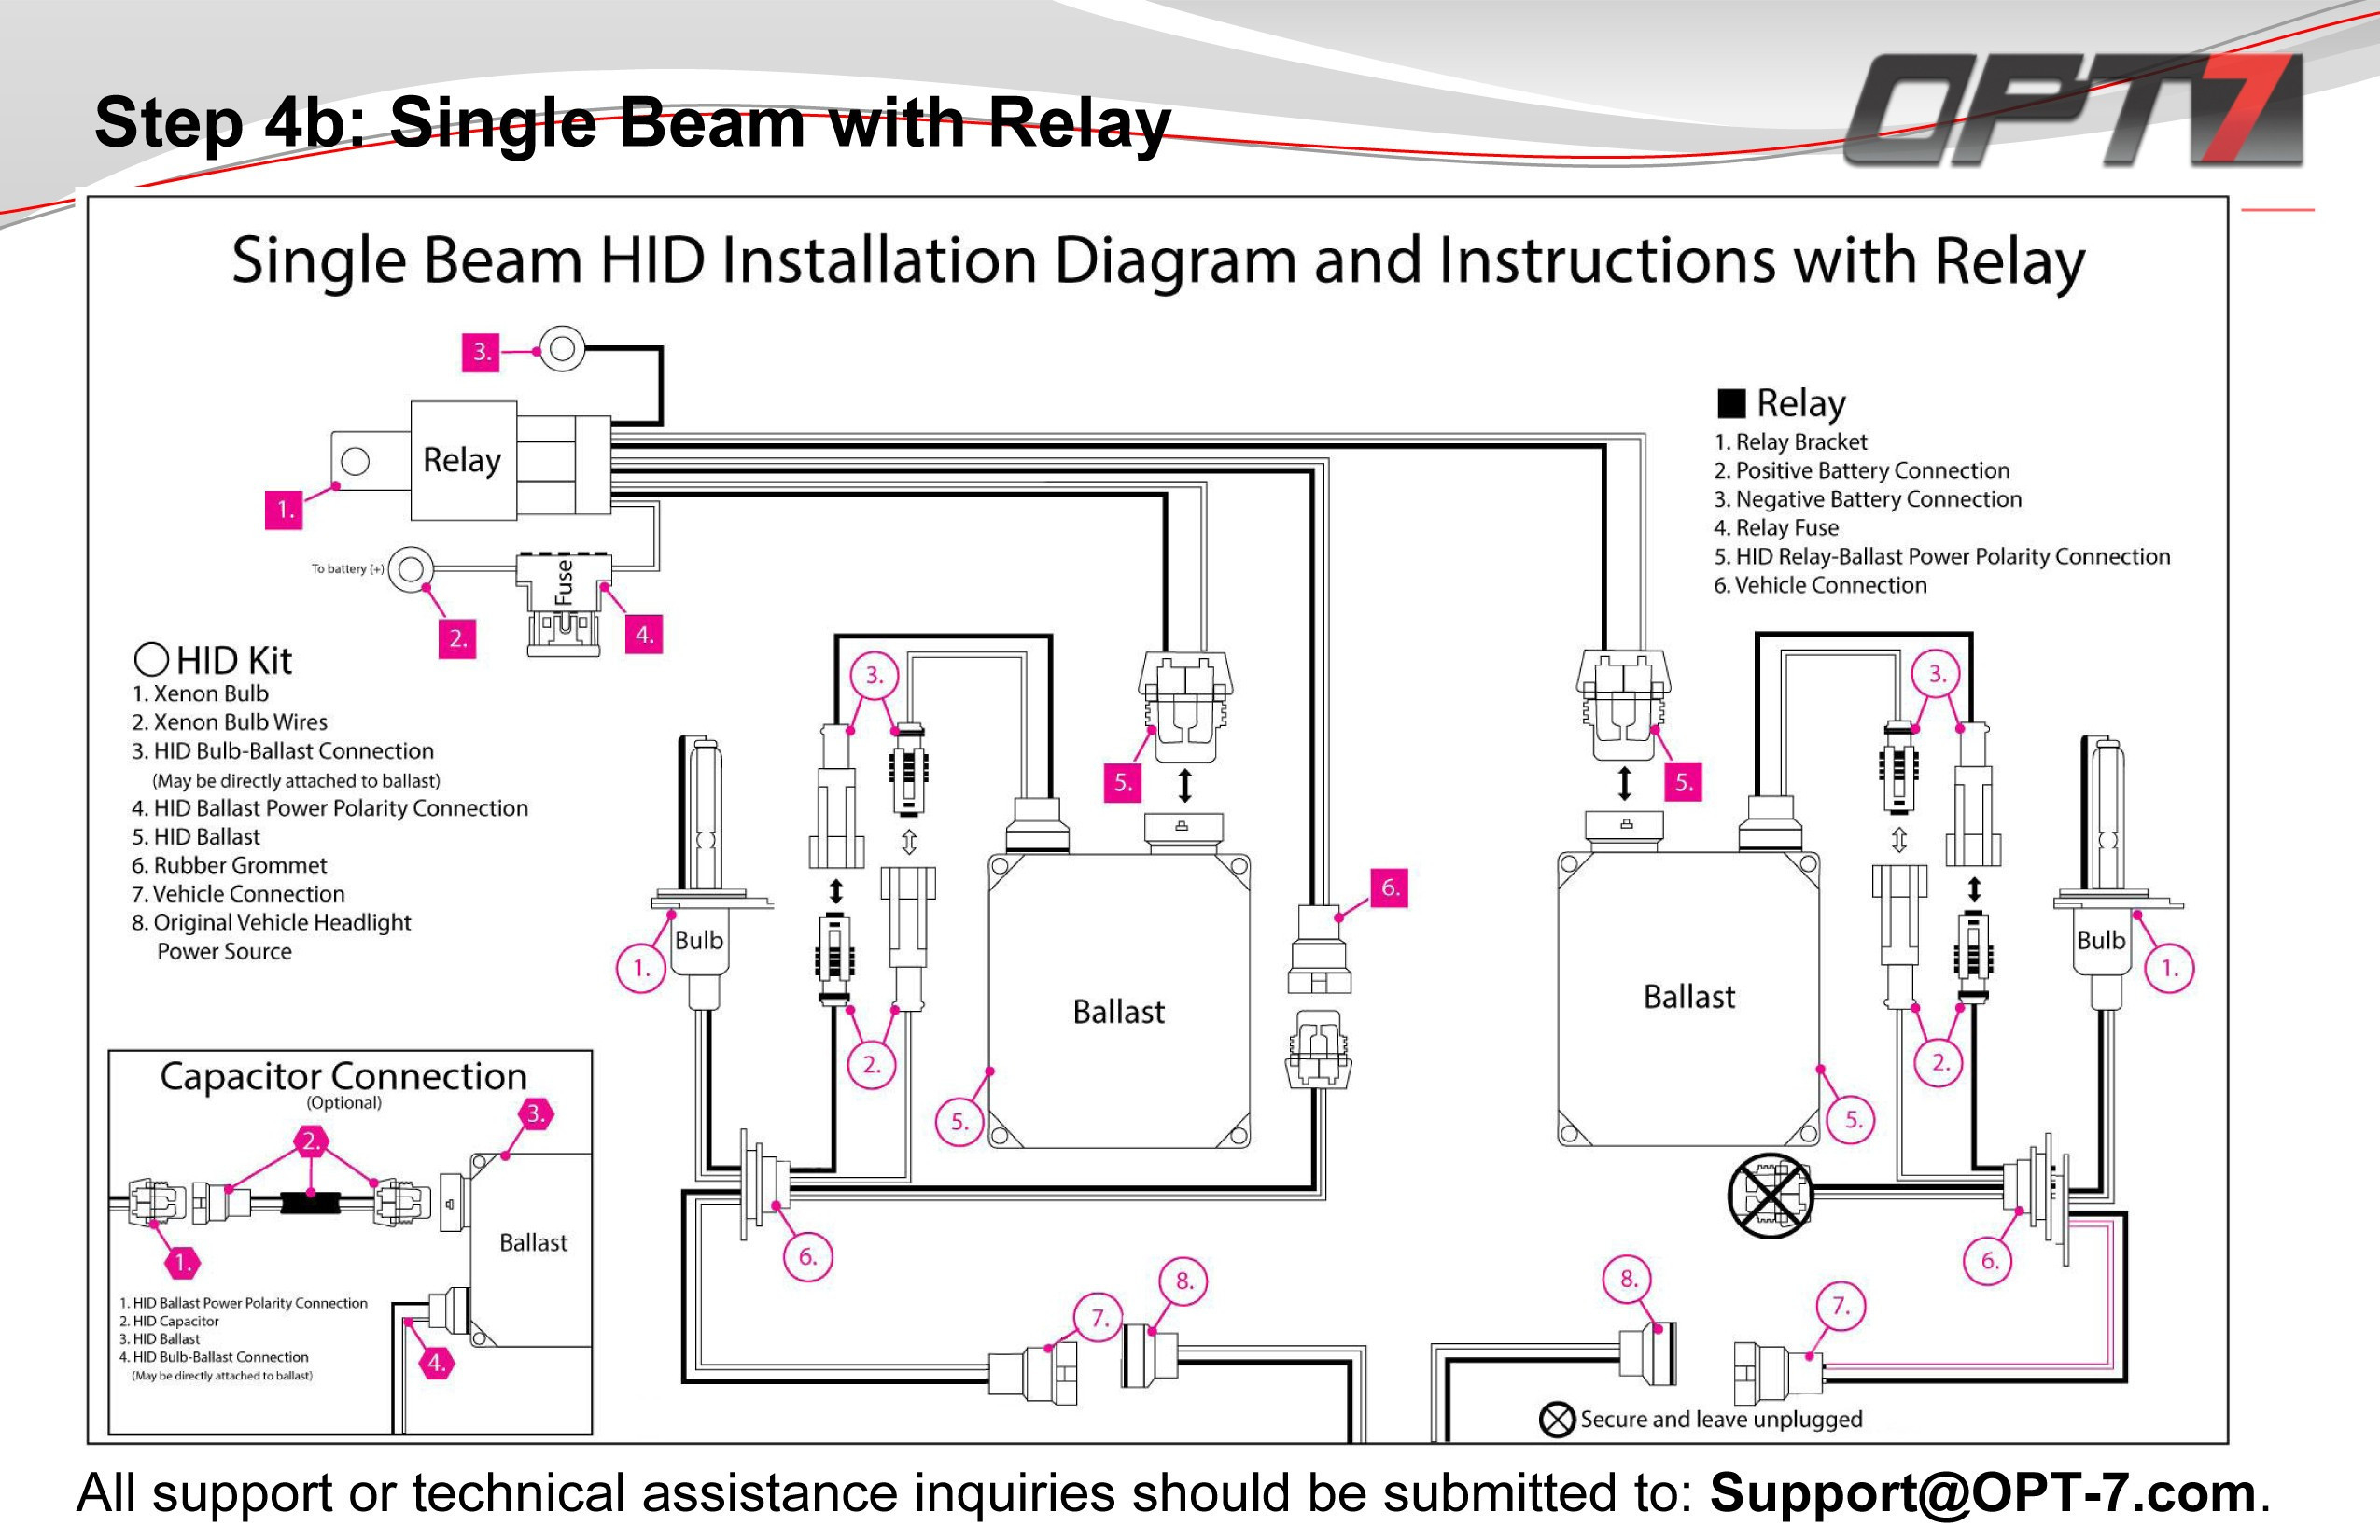 hid wiring diagram with relay Download-Wiring Diagram for Hid Relay Valid Hid Wiring Diagram without Relay New Hid Wiring Diagram with 20-r